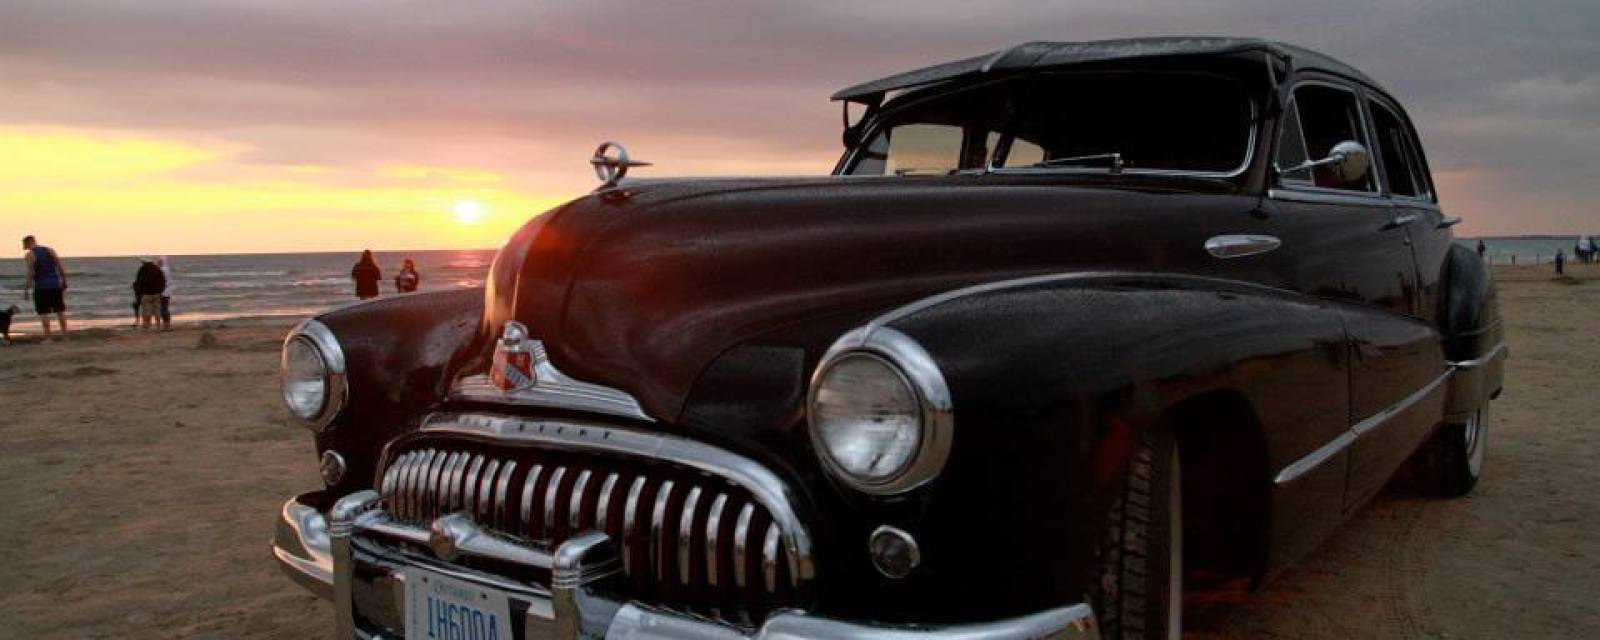 Image result for classic car